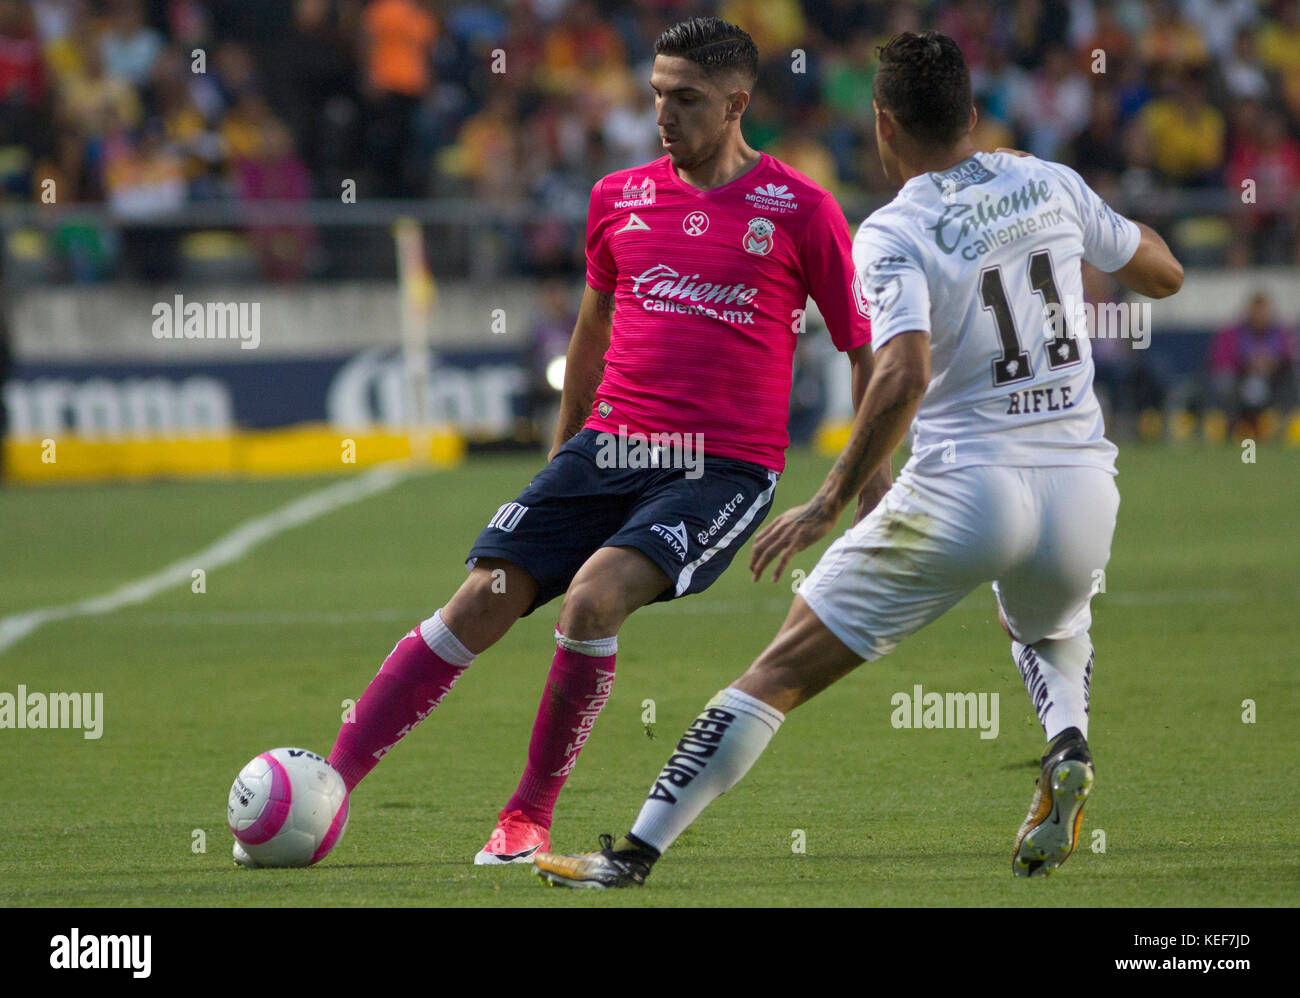 Morelia's soccer team player Diego Valdés (L) fights for the ball Stock  Photo - Alamy